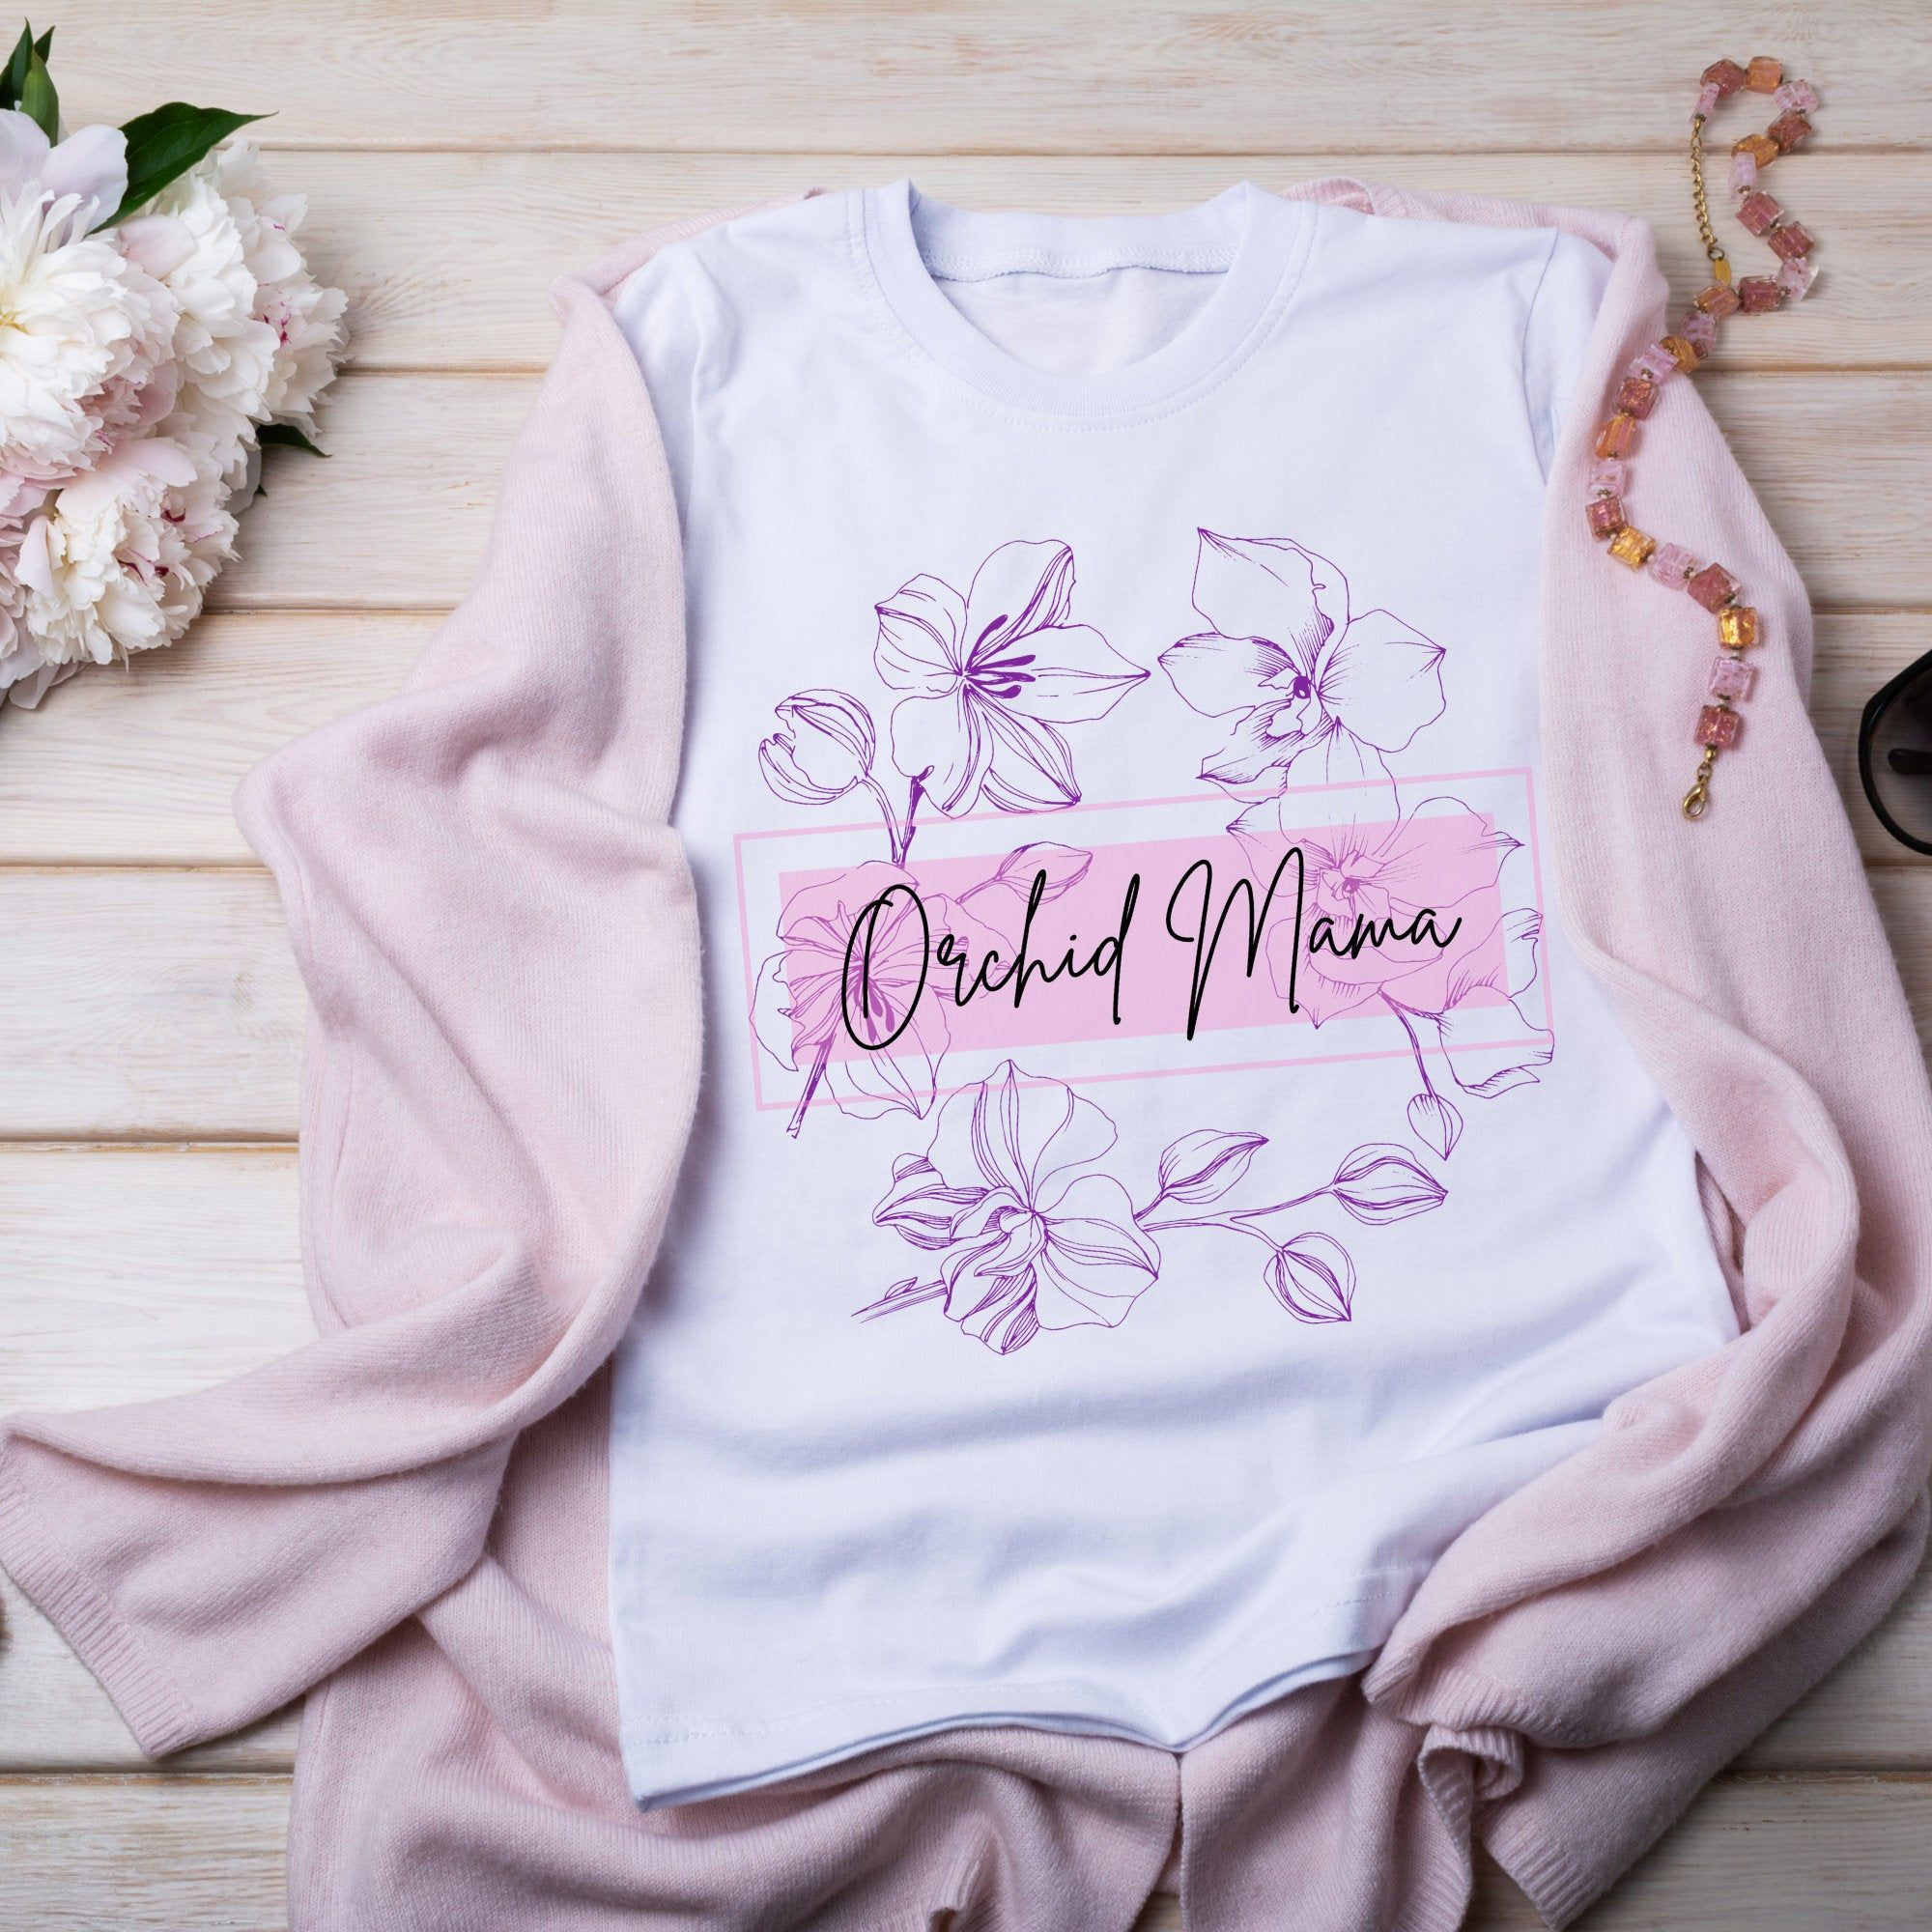 Orchid Mama Shirt, Orchid Mom Shirt, Orchid Lover Shirt, Orchid Gift Shirt, Flower Shirt, Women's Orchid, Plant Mom, Bella and Canvas Shirt by AmyLaelDesigns on Etsy